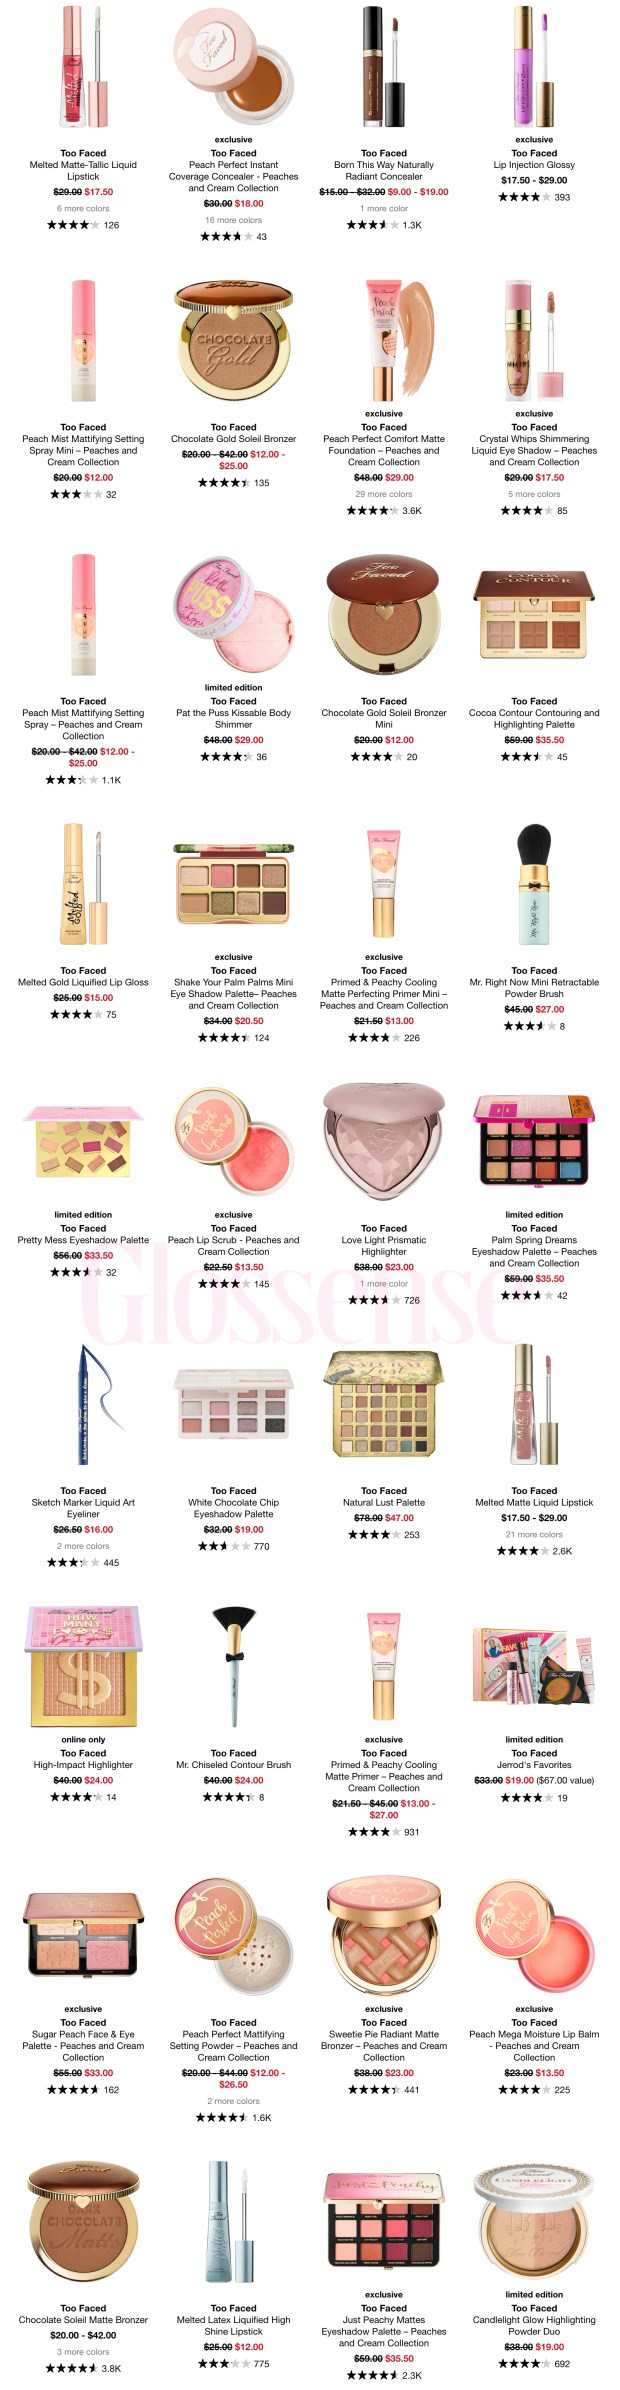 Sephora Canada Hot Sale Labour Day 2020 Save on Too Faced Cosmetics Makeup Canadian Deals - Glossense